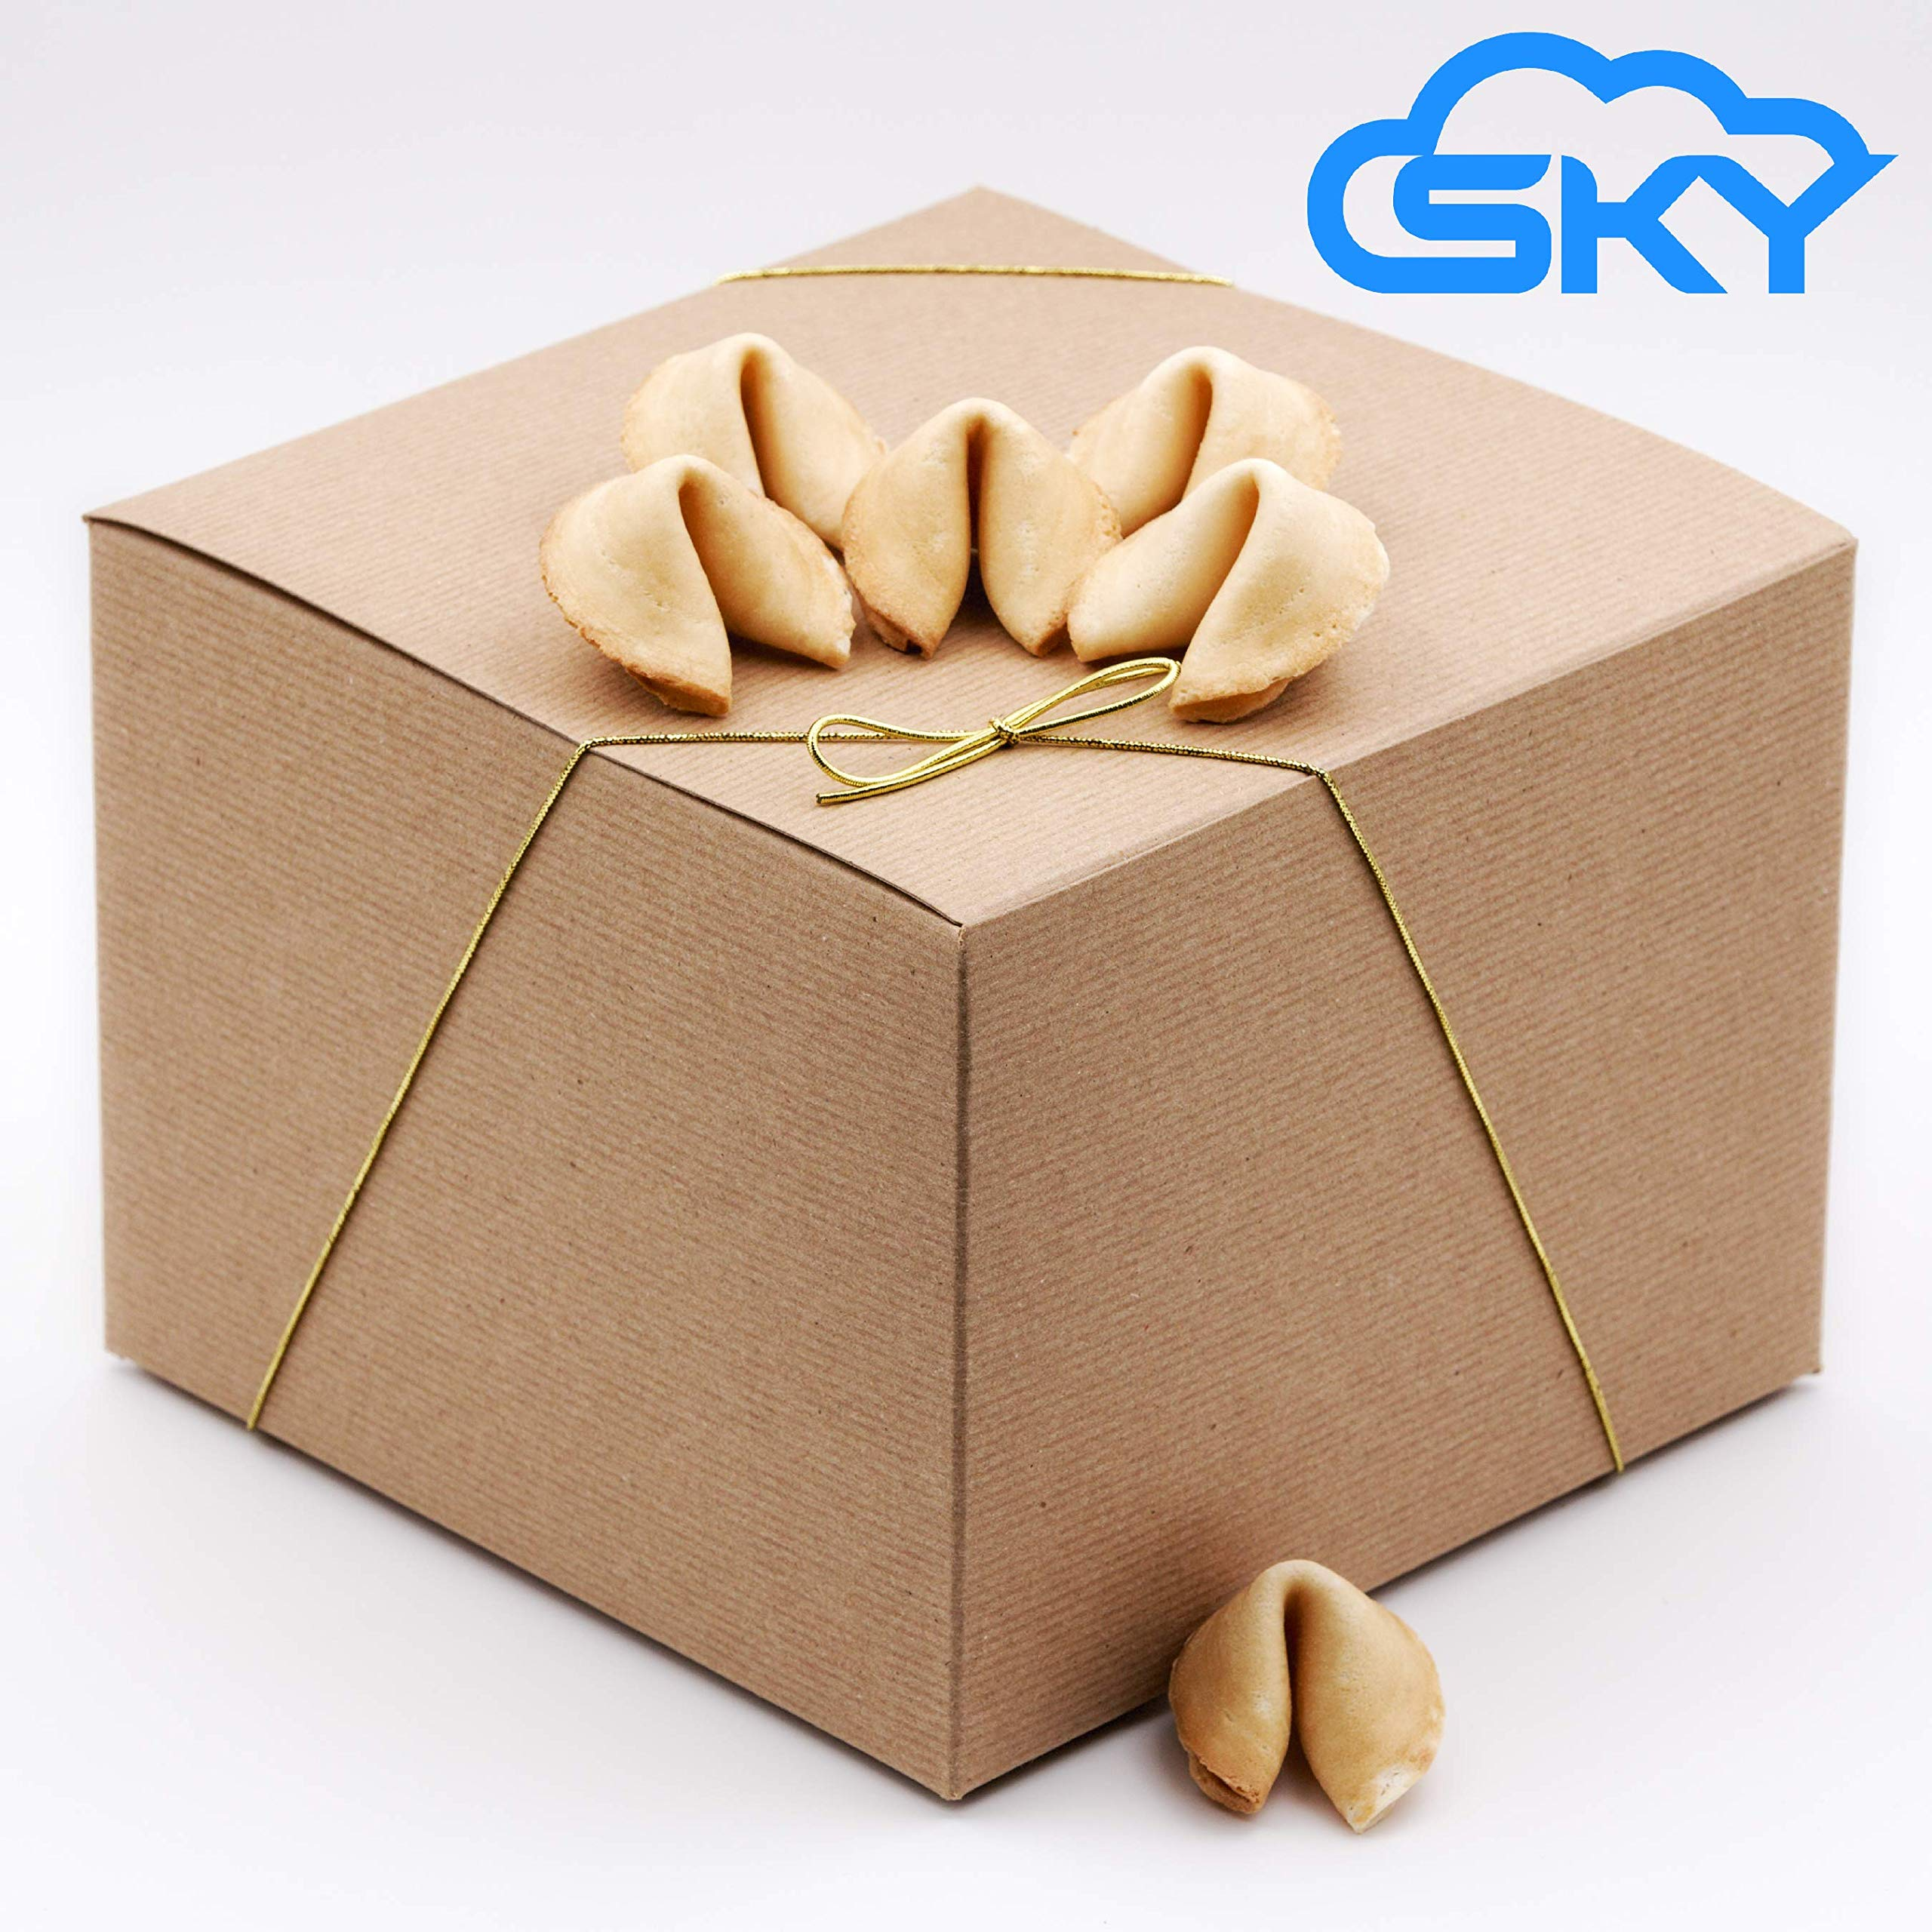 Sky Homemade Super Giant Fortune Cookie Gift Box, Fresh and Crunchy, Cookie within Cookie, Perfect for Gifts, Birthday, Parties, Graduation, New Job, Christmas, Thanksgiving by Sky Ecommerce (Image #5)